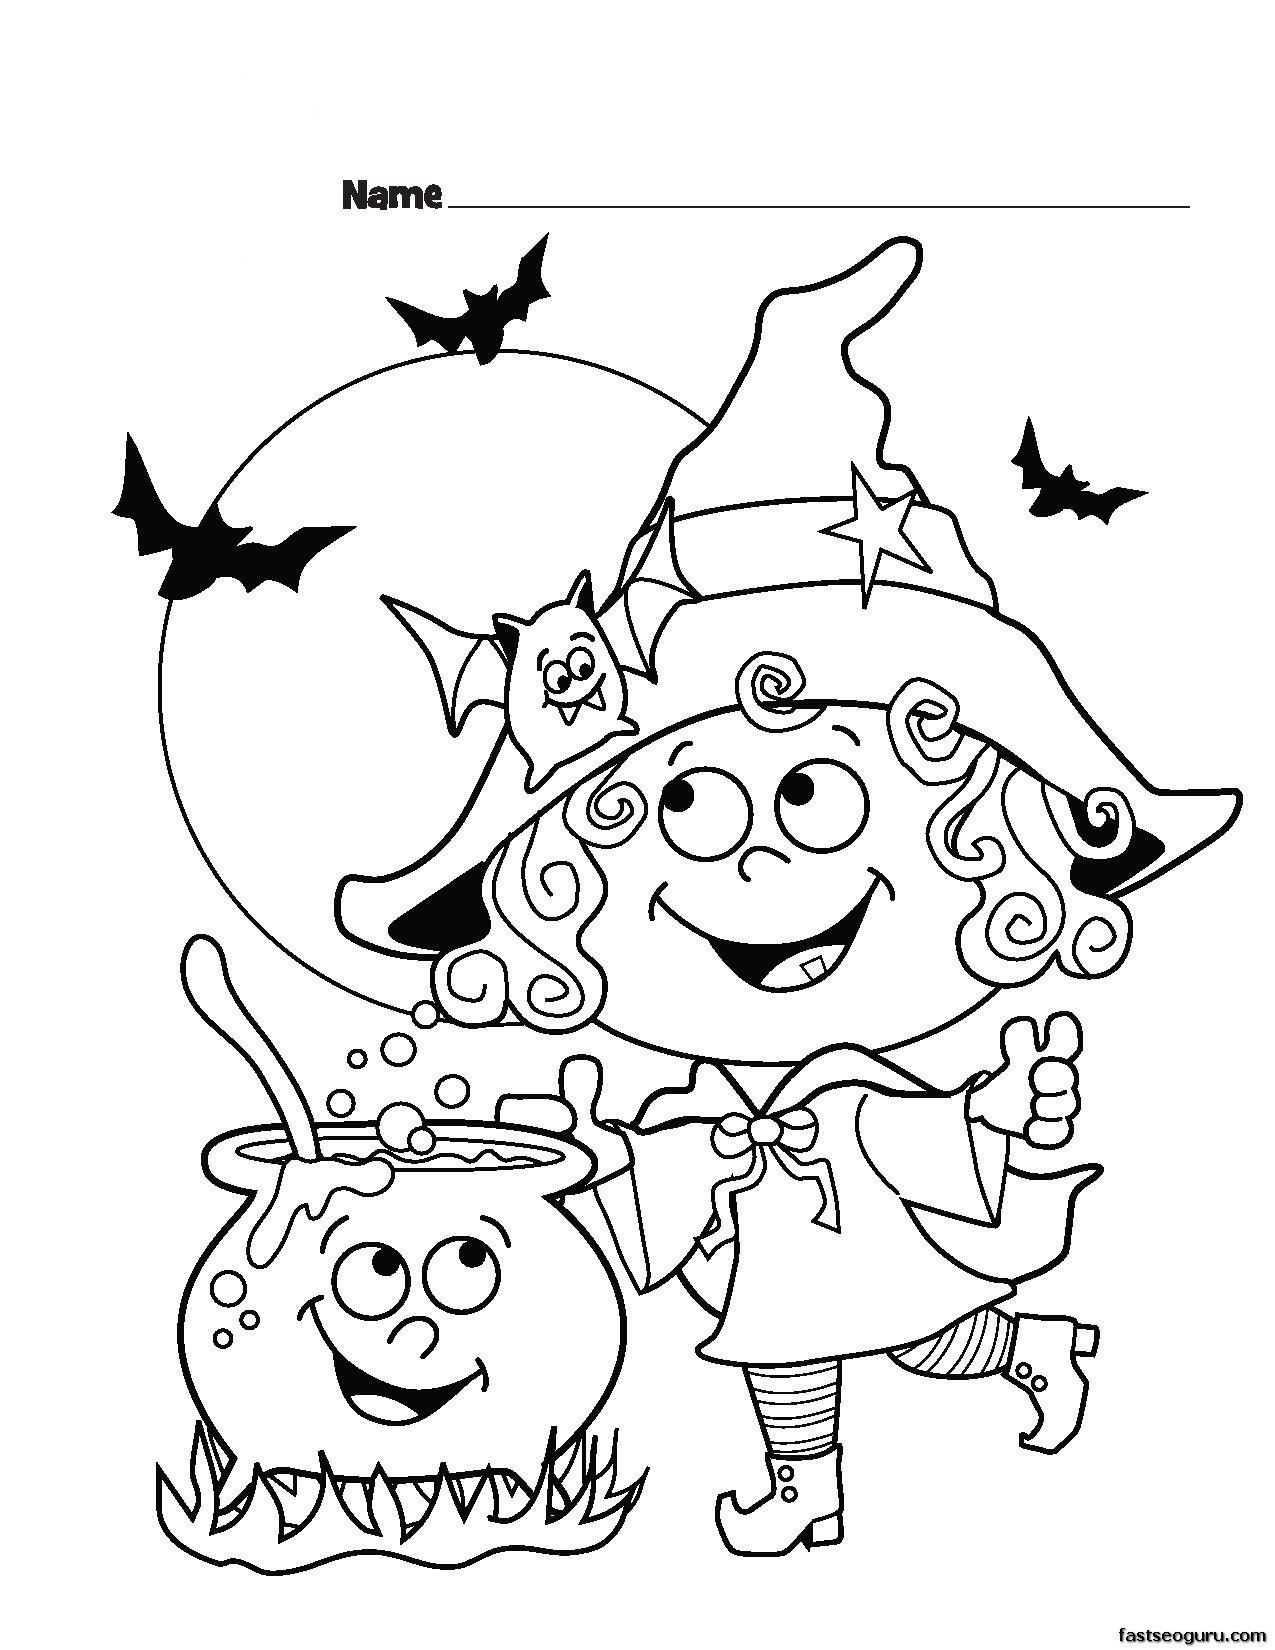 Halloween Coloring Sheets For Kid Halloween Coloring Pages For Preschoolers Witch Coloring Pages Free Halloween Coloring Pages Cute Halloween Coloring Pages